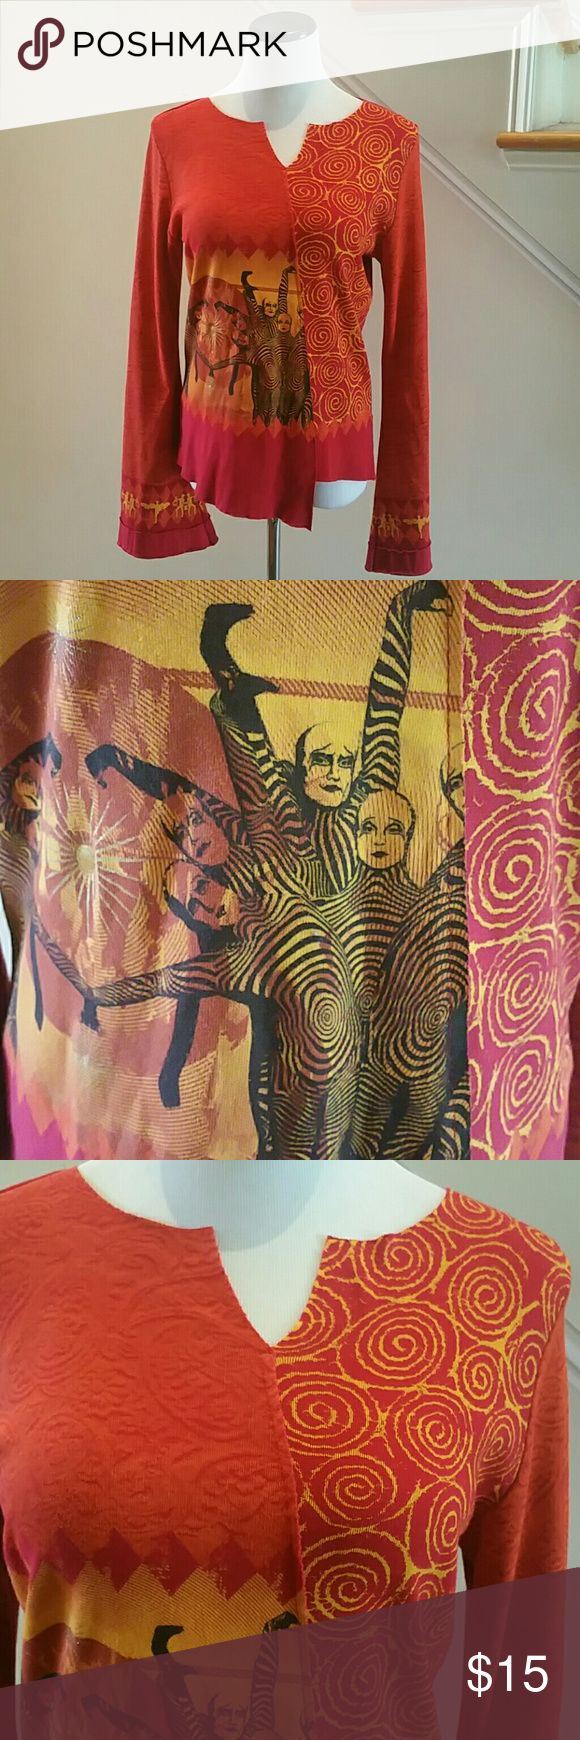 "Top - ""Cirque Du Soleil"" Authentic If you're a fan or have a lasting impression of a performance, this fun and unique top will be great to have as a stylish fashion item or memorabilia. Bright orange with a theatrical design to include performers. Made in Canada. Gentle wear and I'm very good condition. C: 38"",  L: 25"" & 23"" in front - two cuts, Bell sleeves: 27"" Tops"